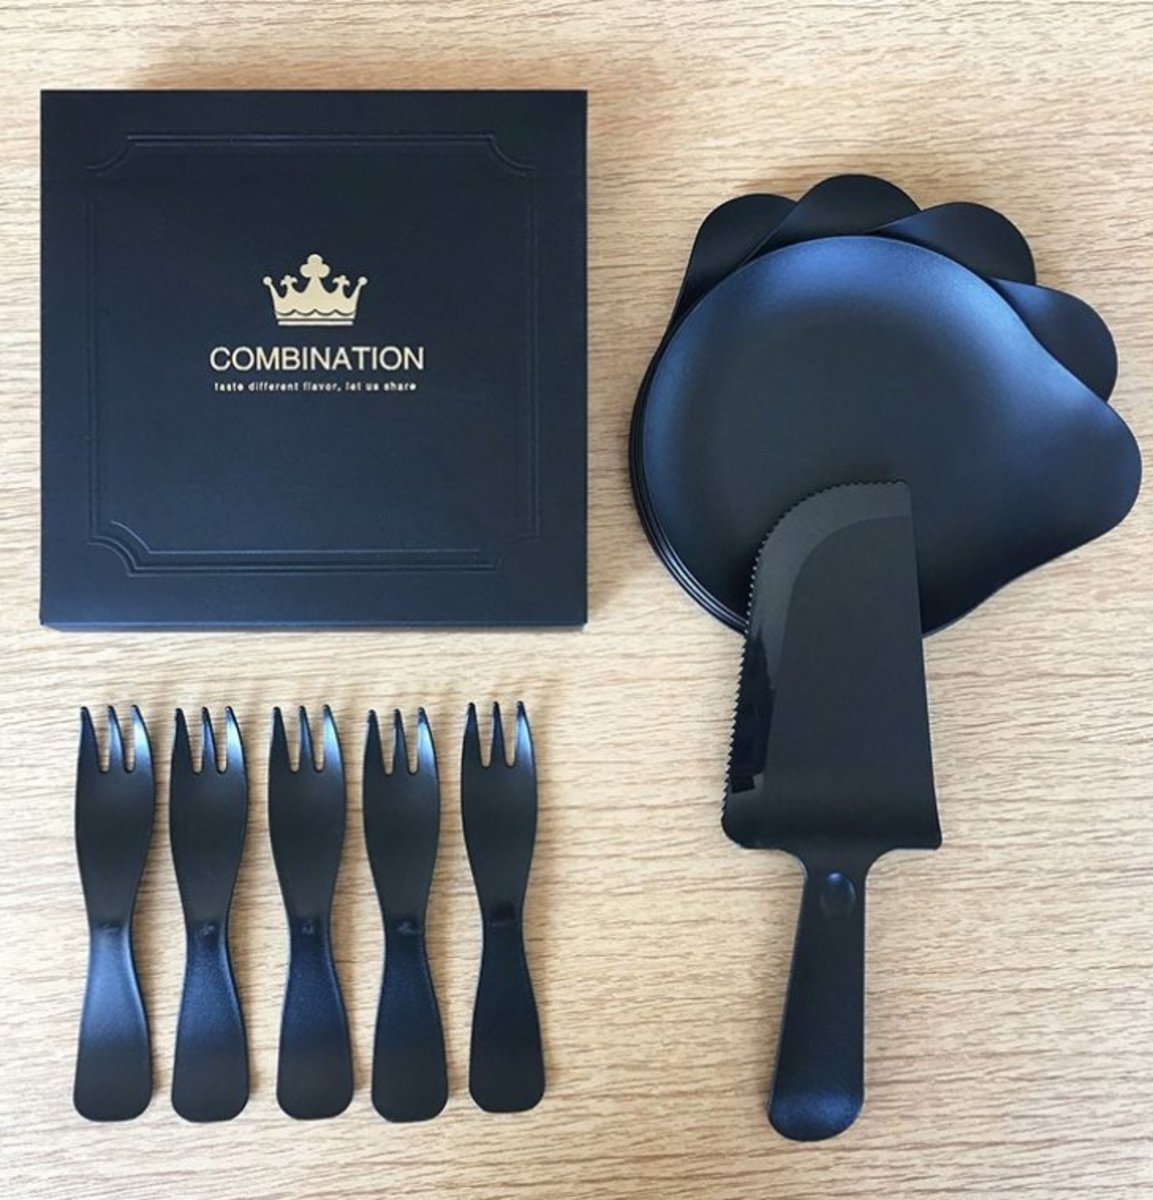 (Black) Disposable Tablewares for 5 persons